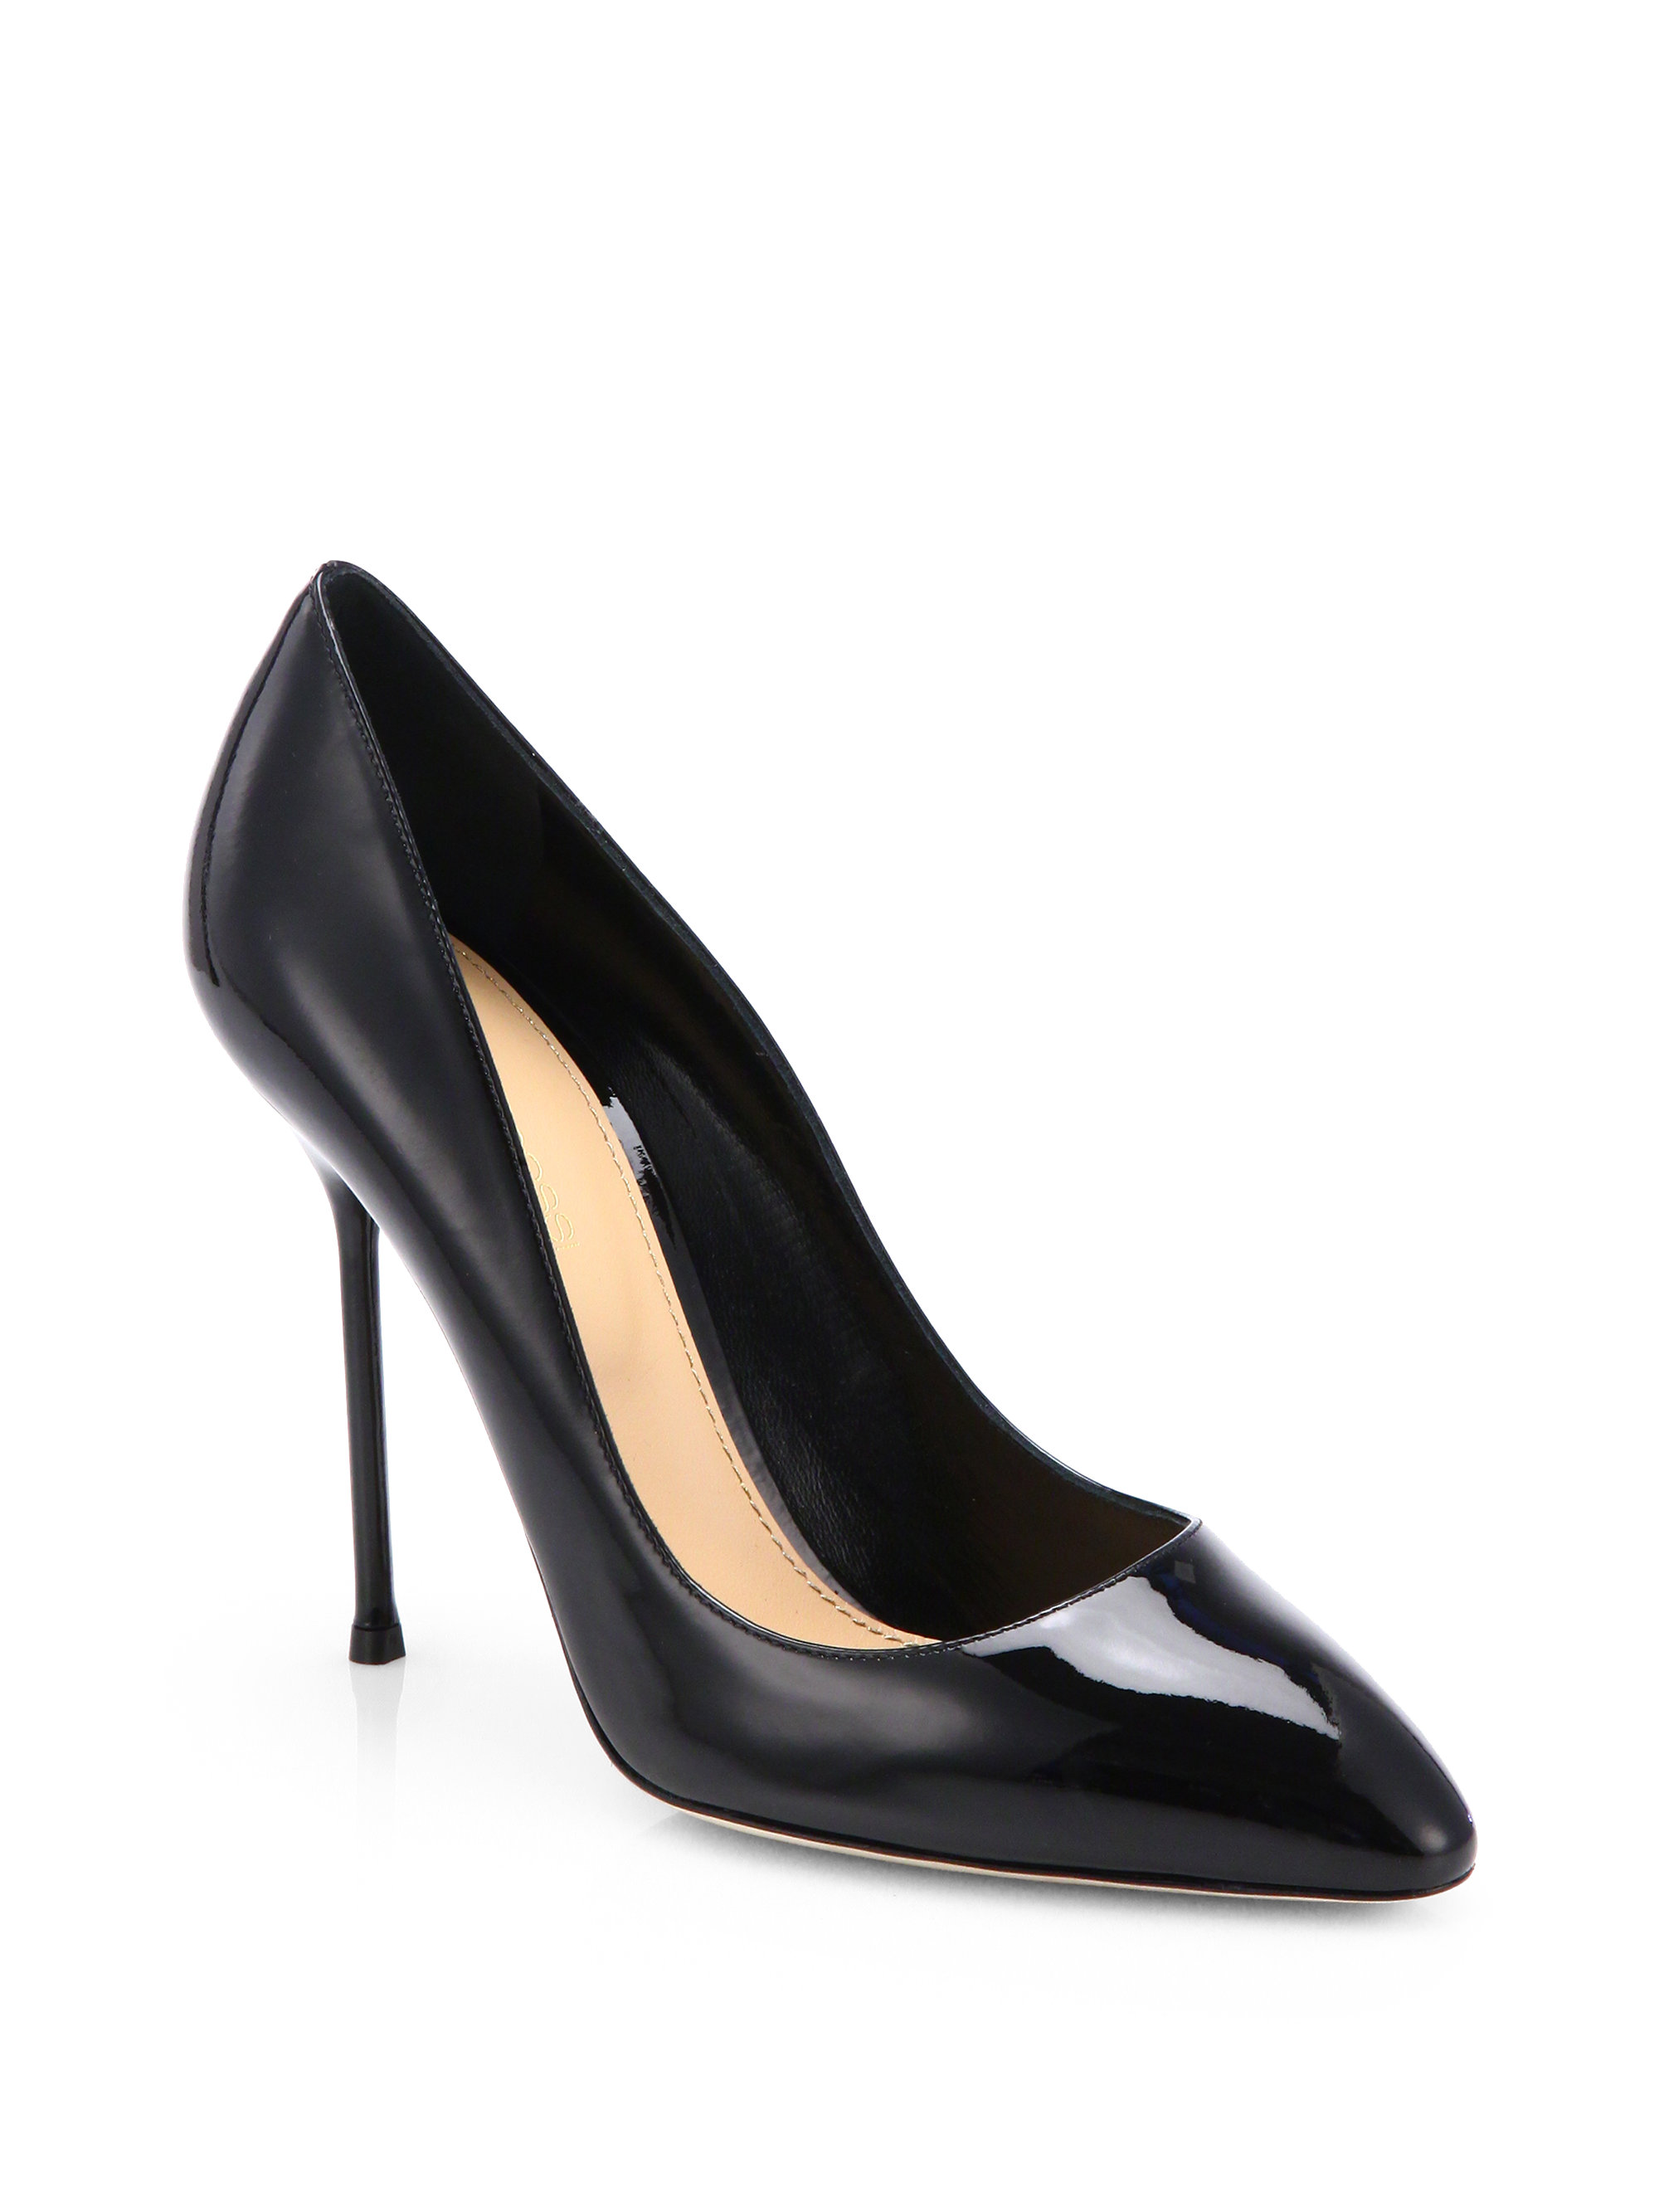 Sergio Rossi Leather Pumps aAthr5jz8a